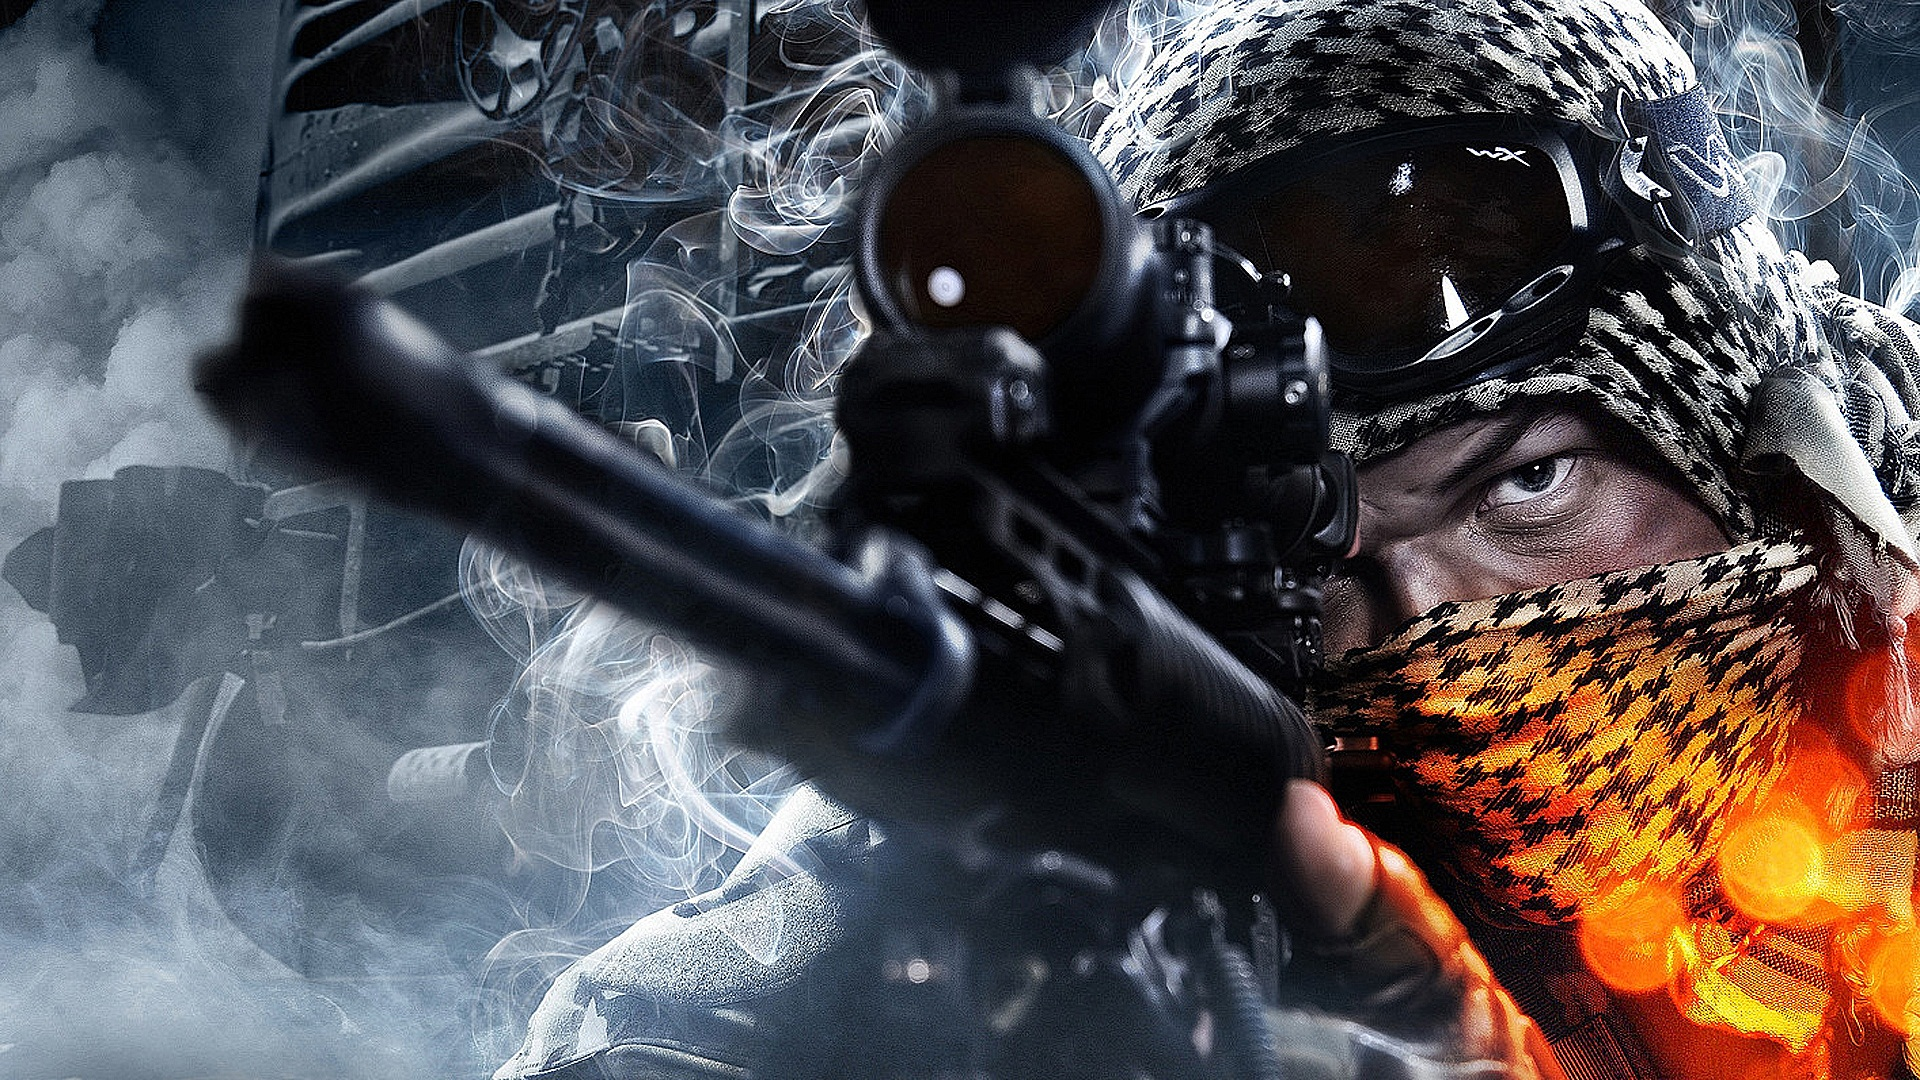 rsz_bf4-hd-wallpaper-sniper